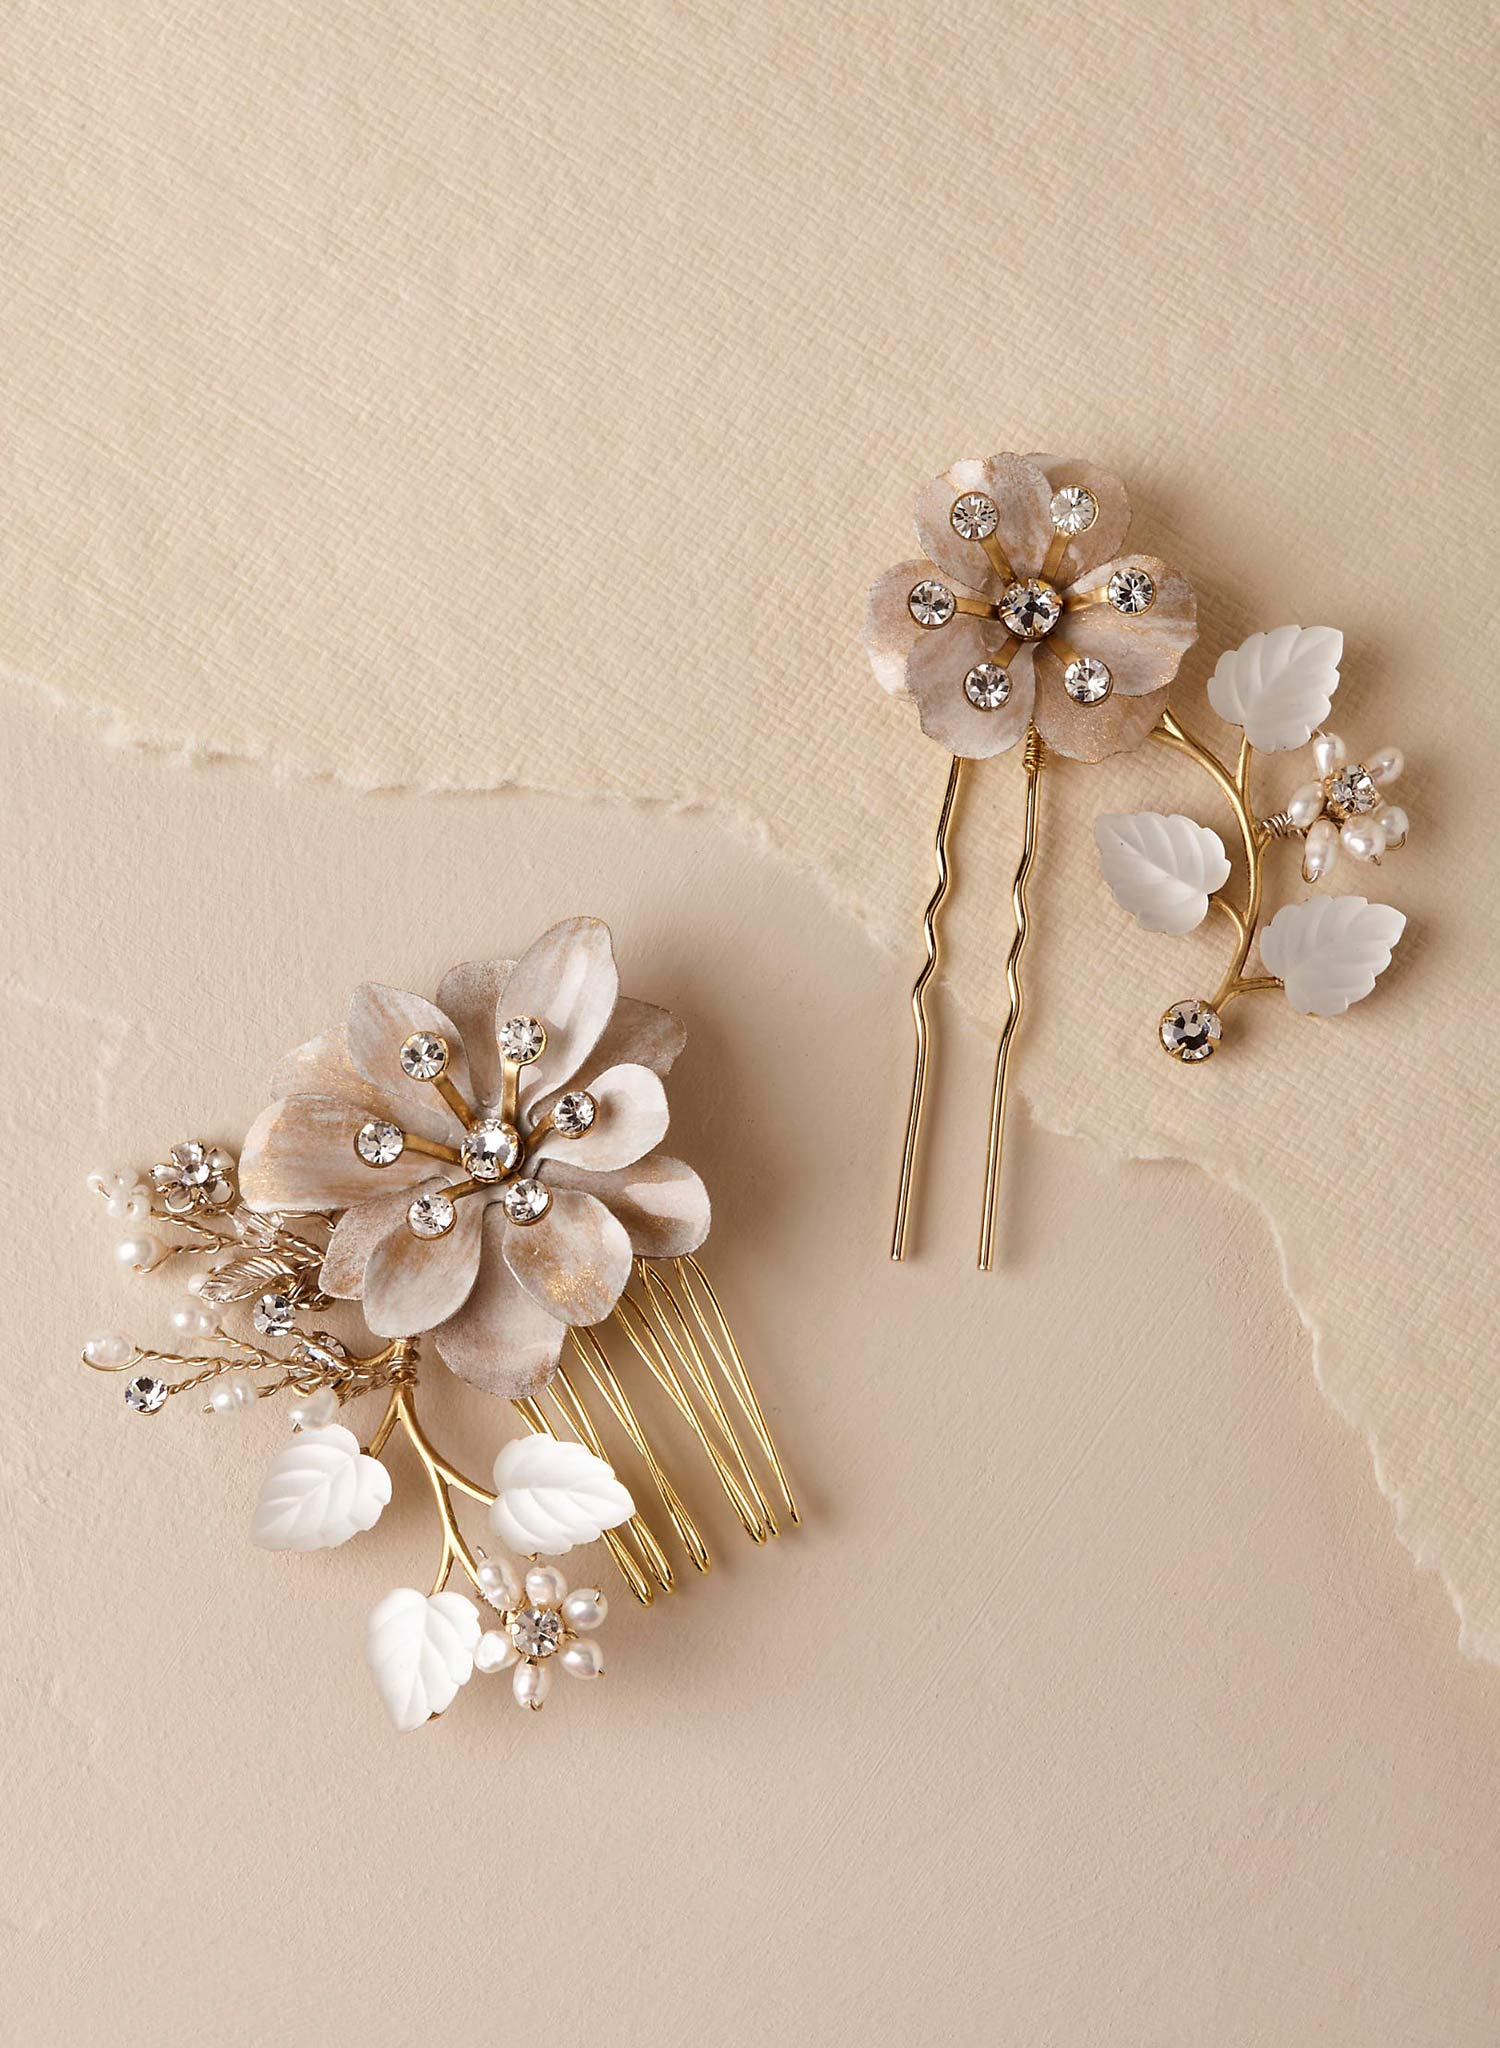 Ortensia hair pin - Style #890